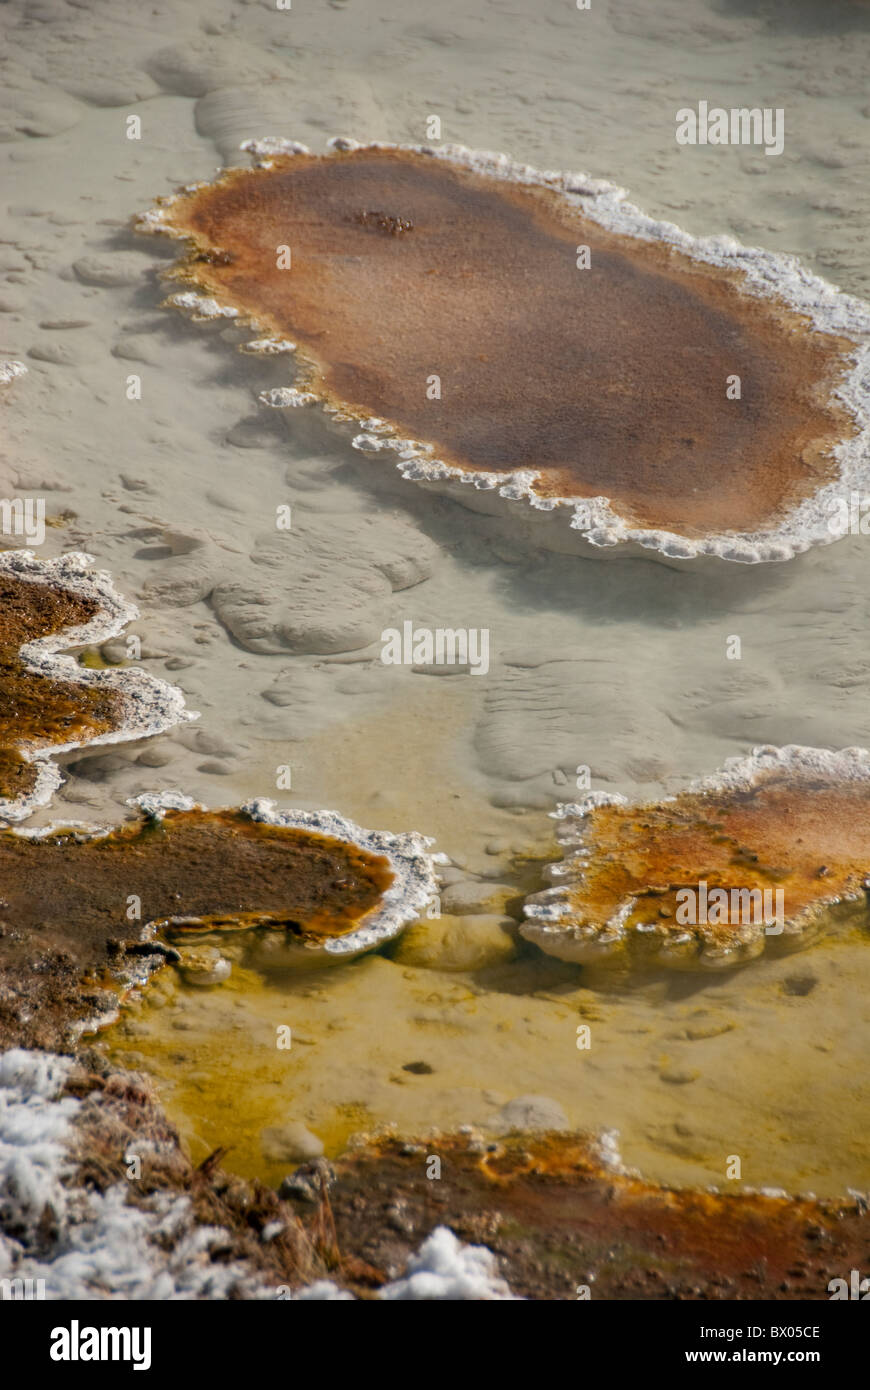 USA, Wyoming. Yellowstone National Park. Fountain Paint Pot area. Geothermal features, thermophile bacteria mat. - Stock Image